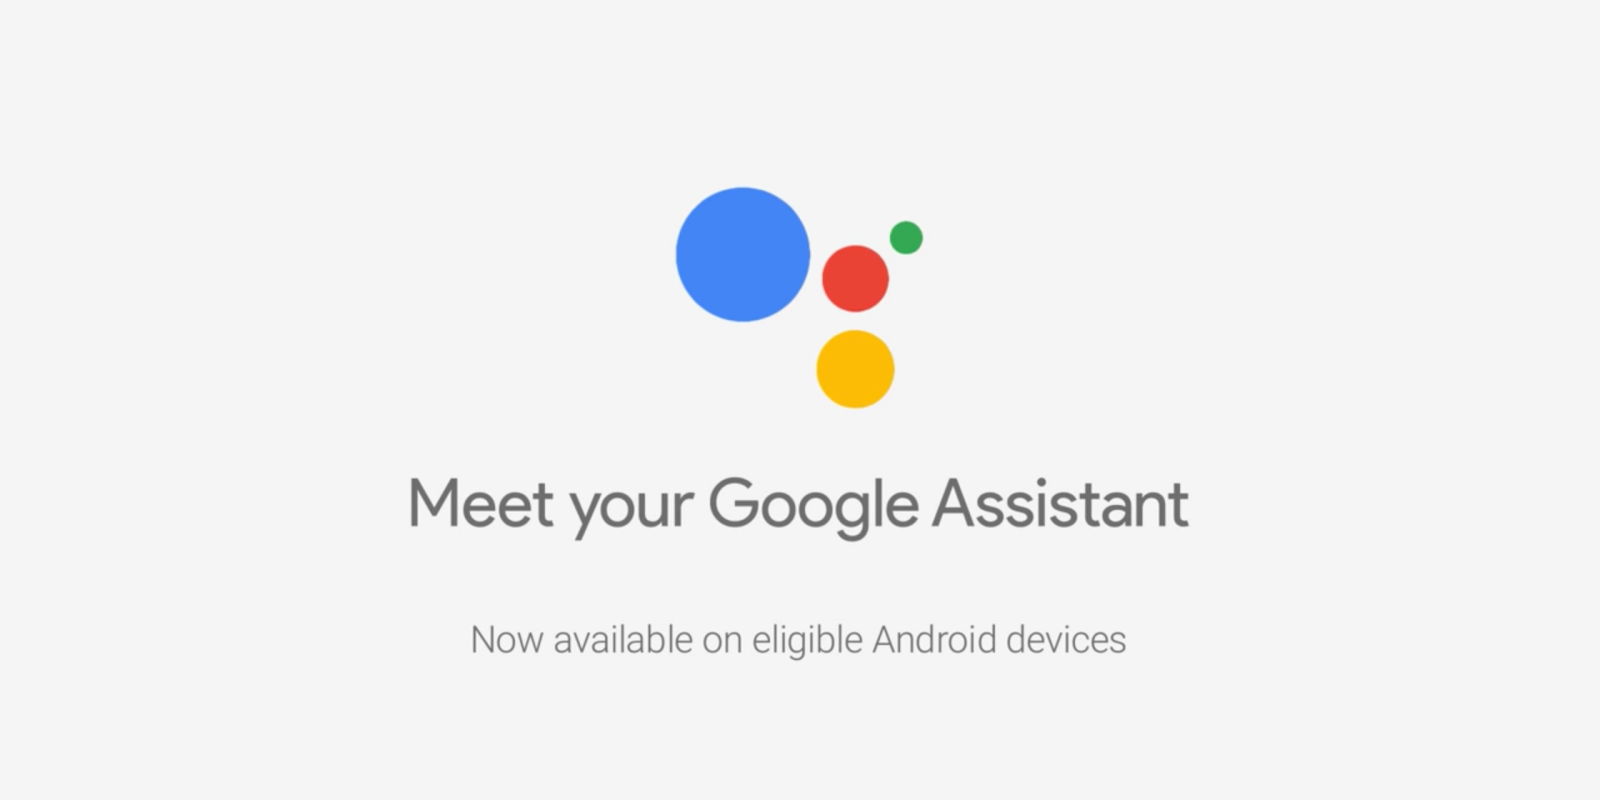 google announces major upgrade for google assistant during